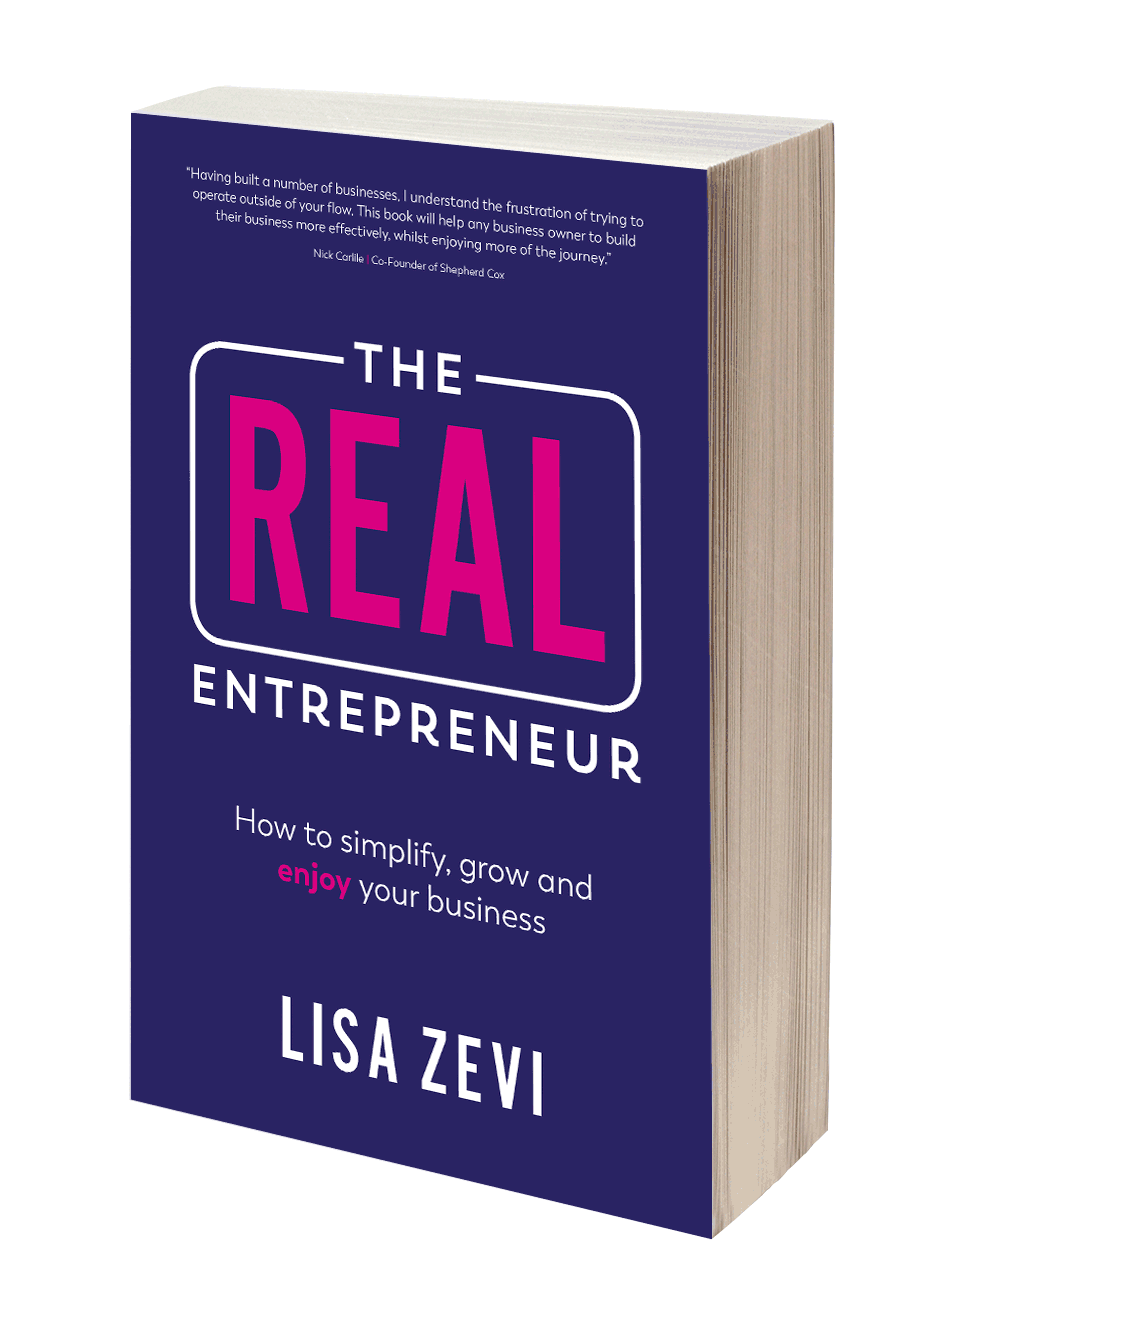 Real Entrepreneur paperback by operational business coach Lisa Zevi